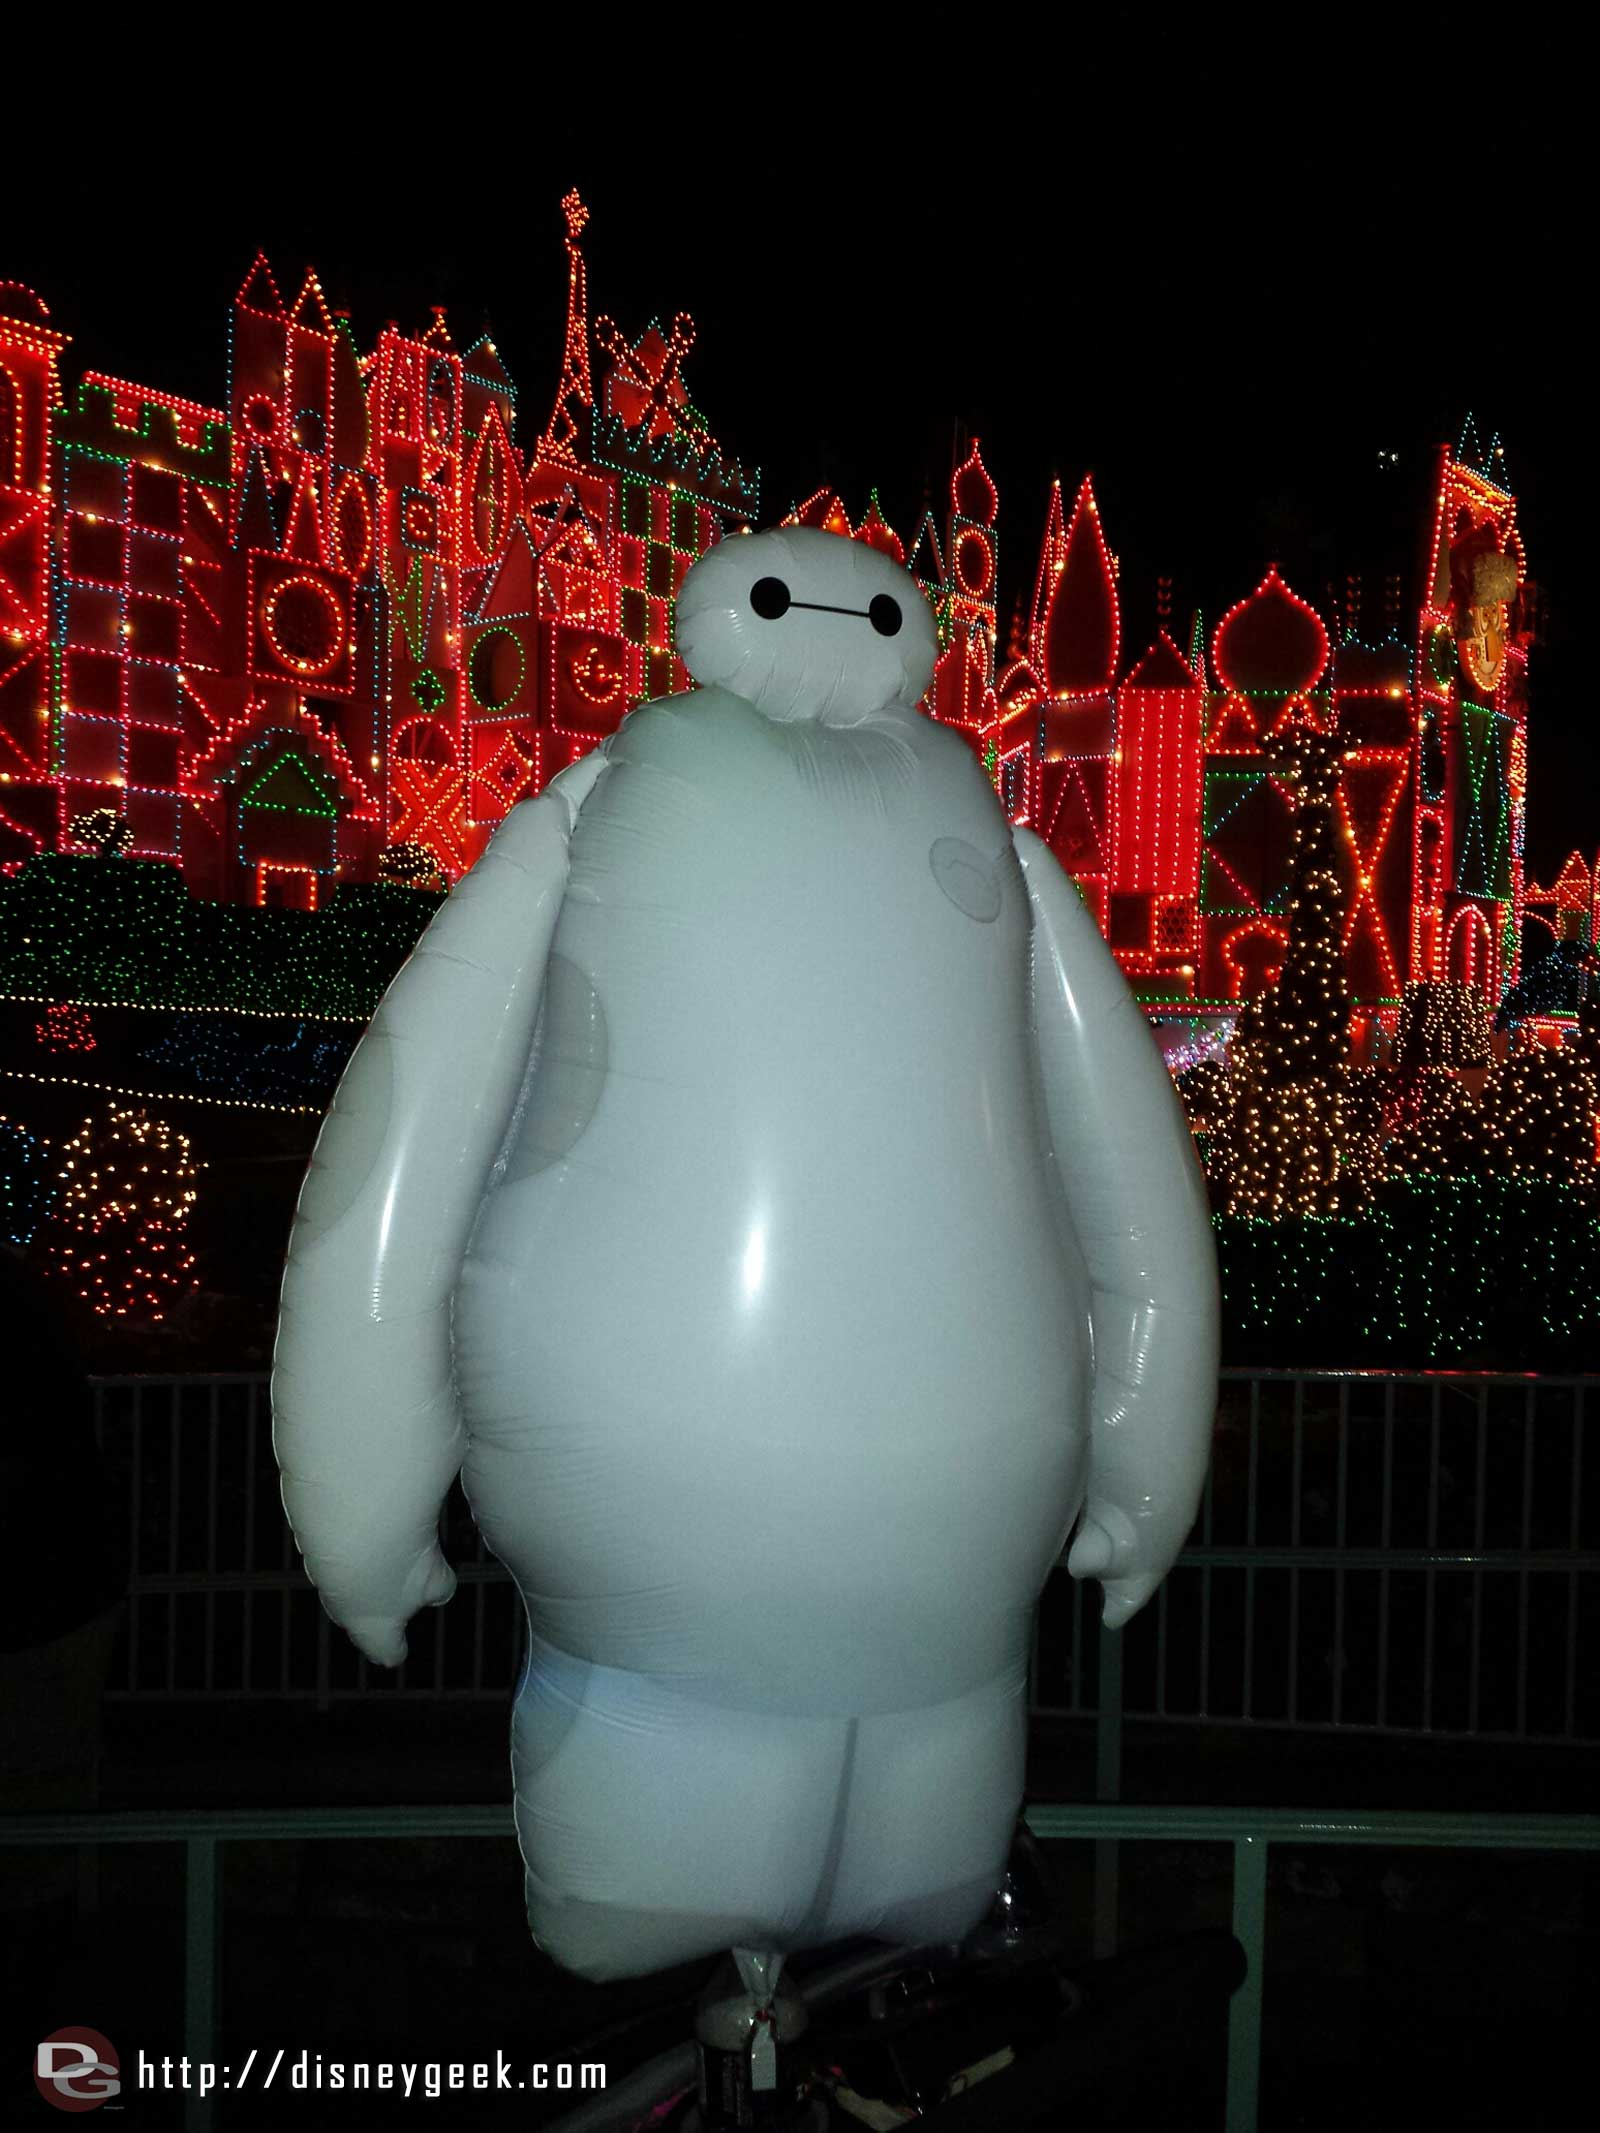 Baymax balloon in front of Small World Holiday #Disneyland #BigHero6